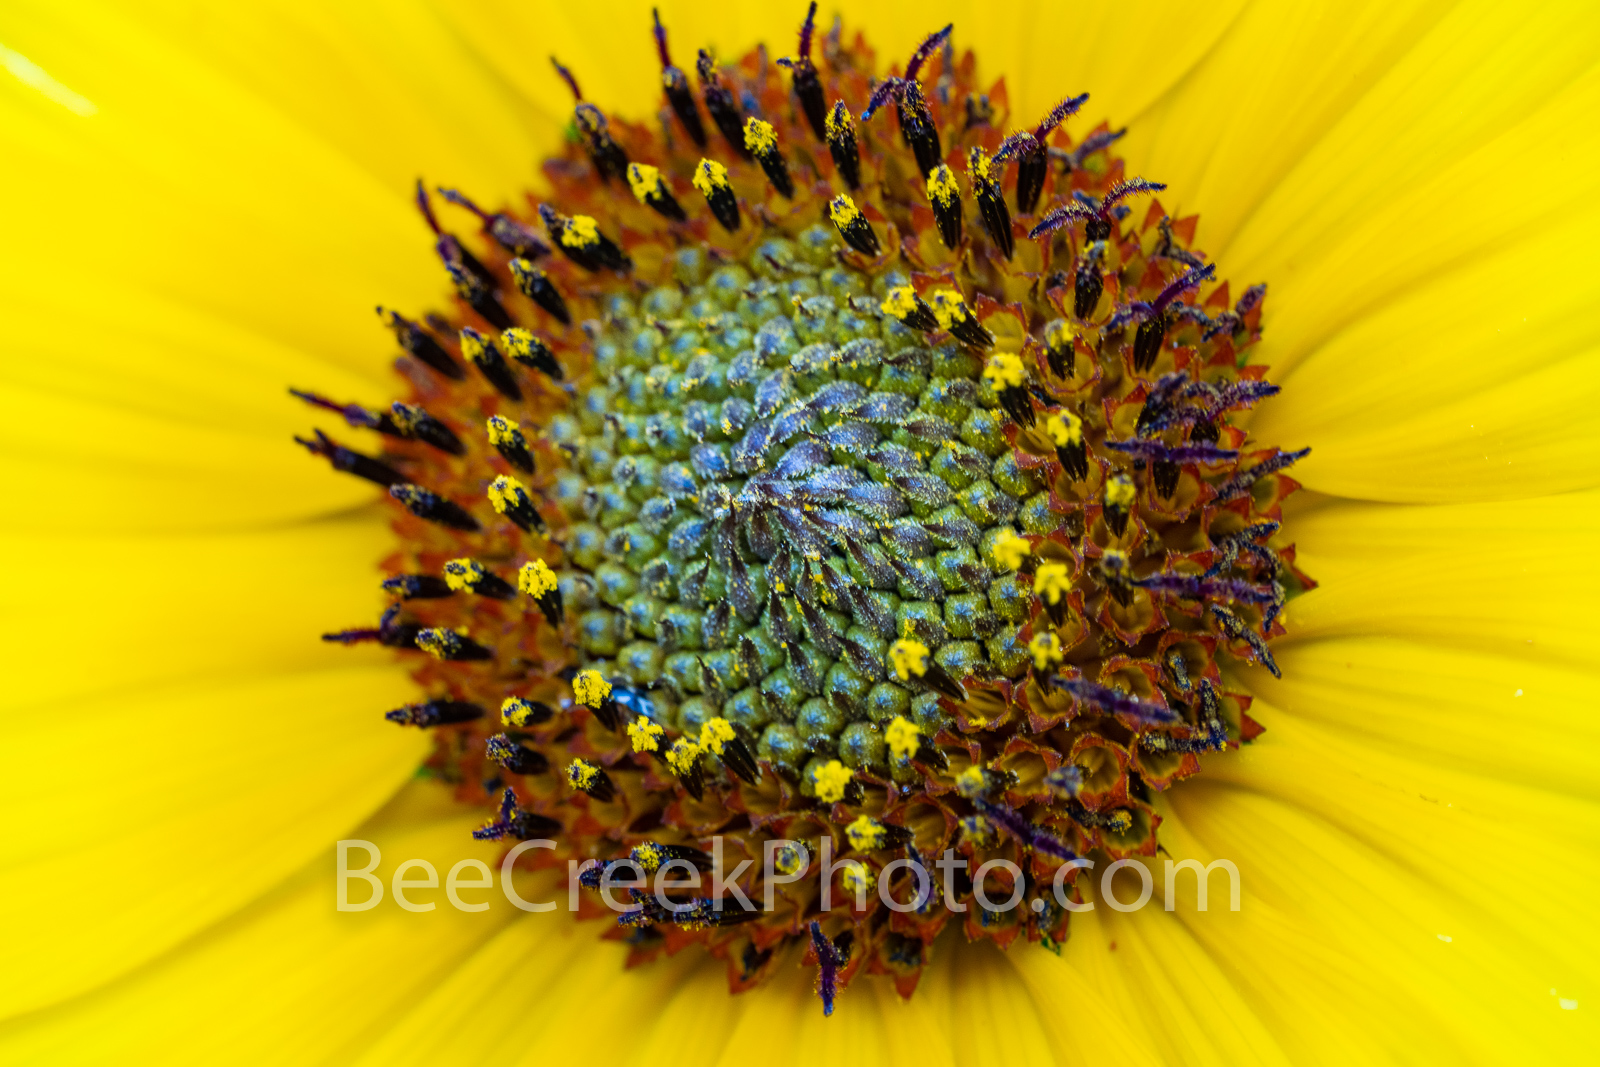 Sunflower Macro - We captured this sunflower in a close up where the details of the plant can be seen clearly.  We love sunflower...